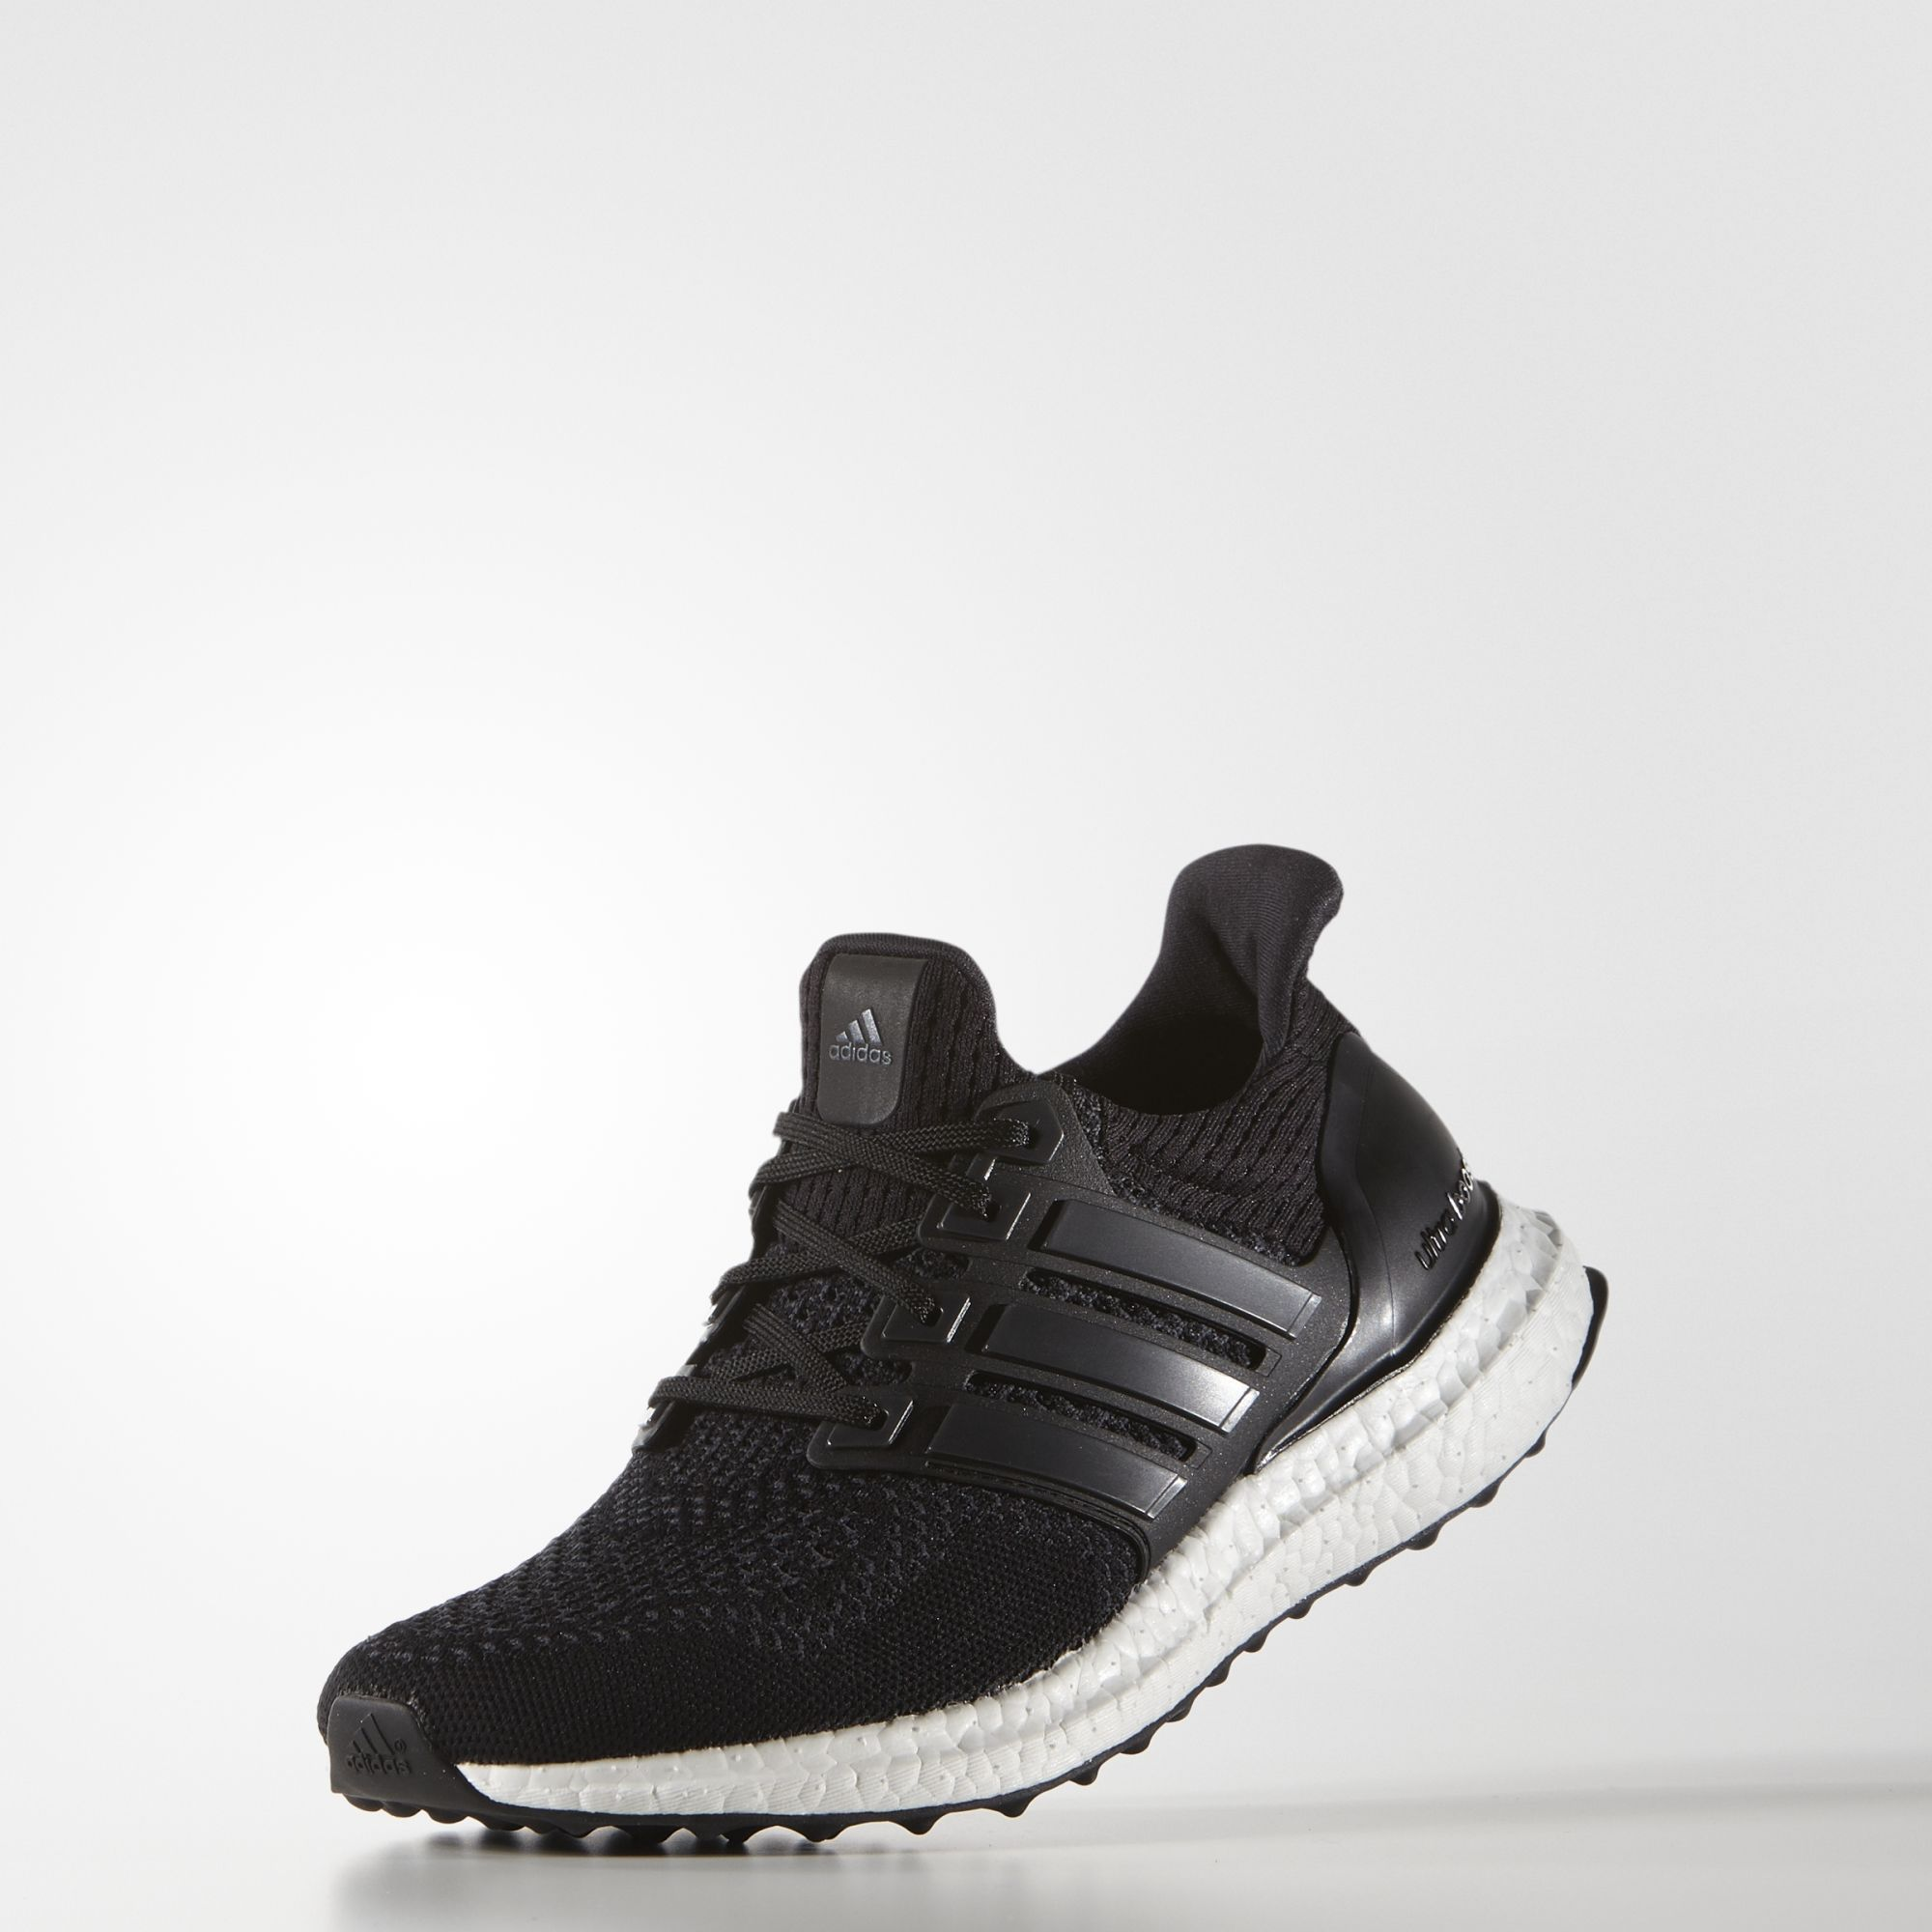 d9a4940ff7 adidas Ultra Boost Shoes - Black | adidas US | Shoes | Adidas ultra ...